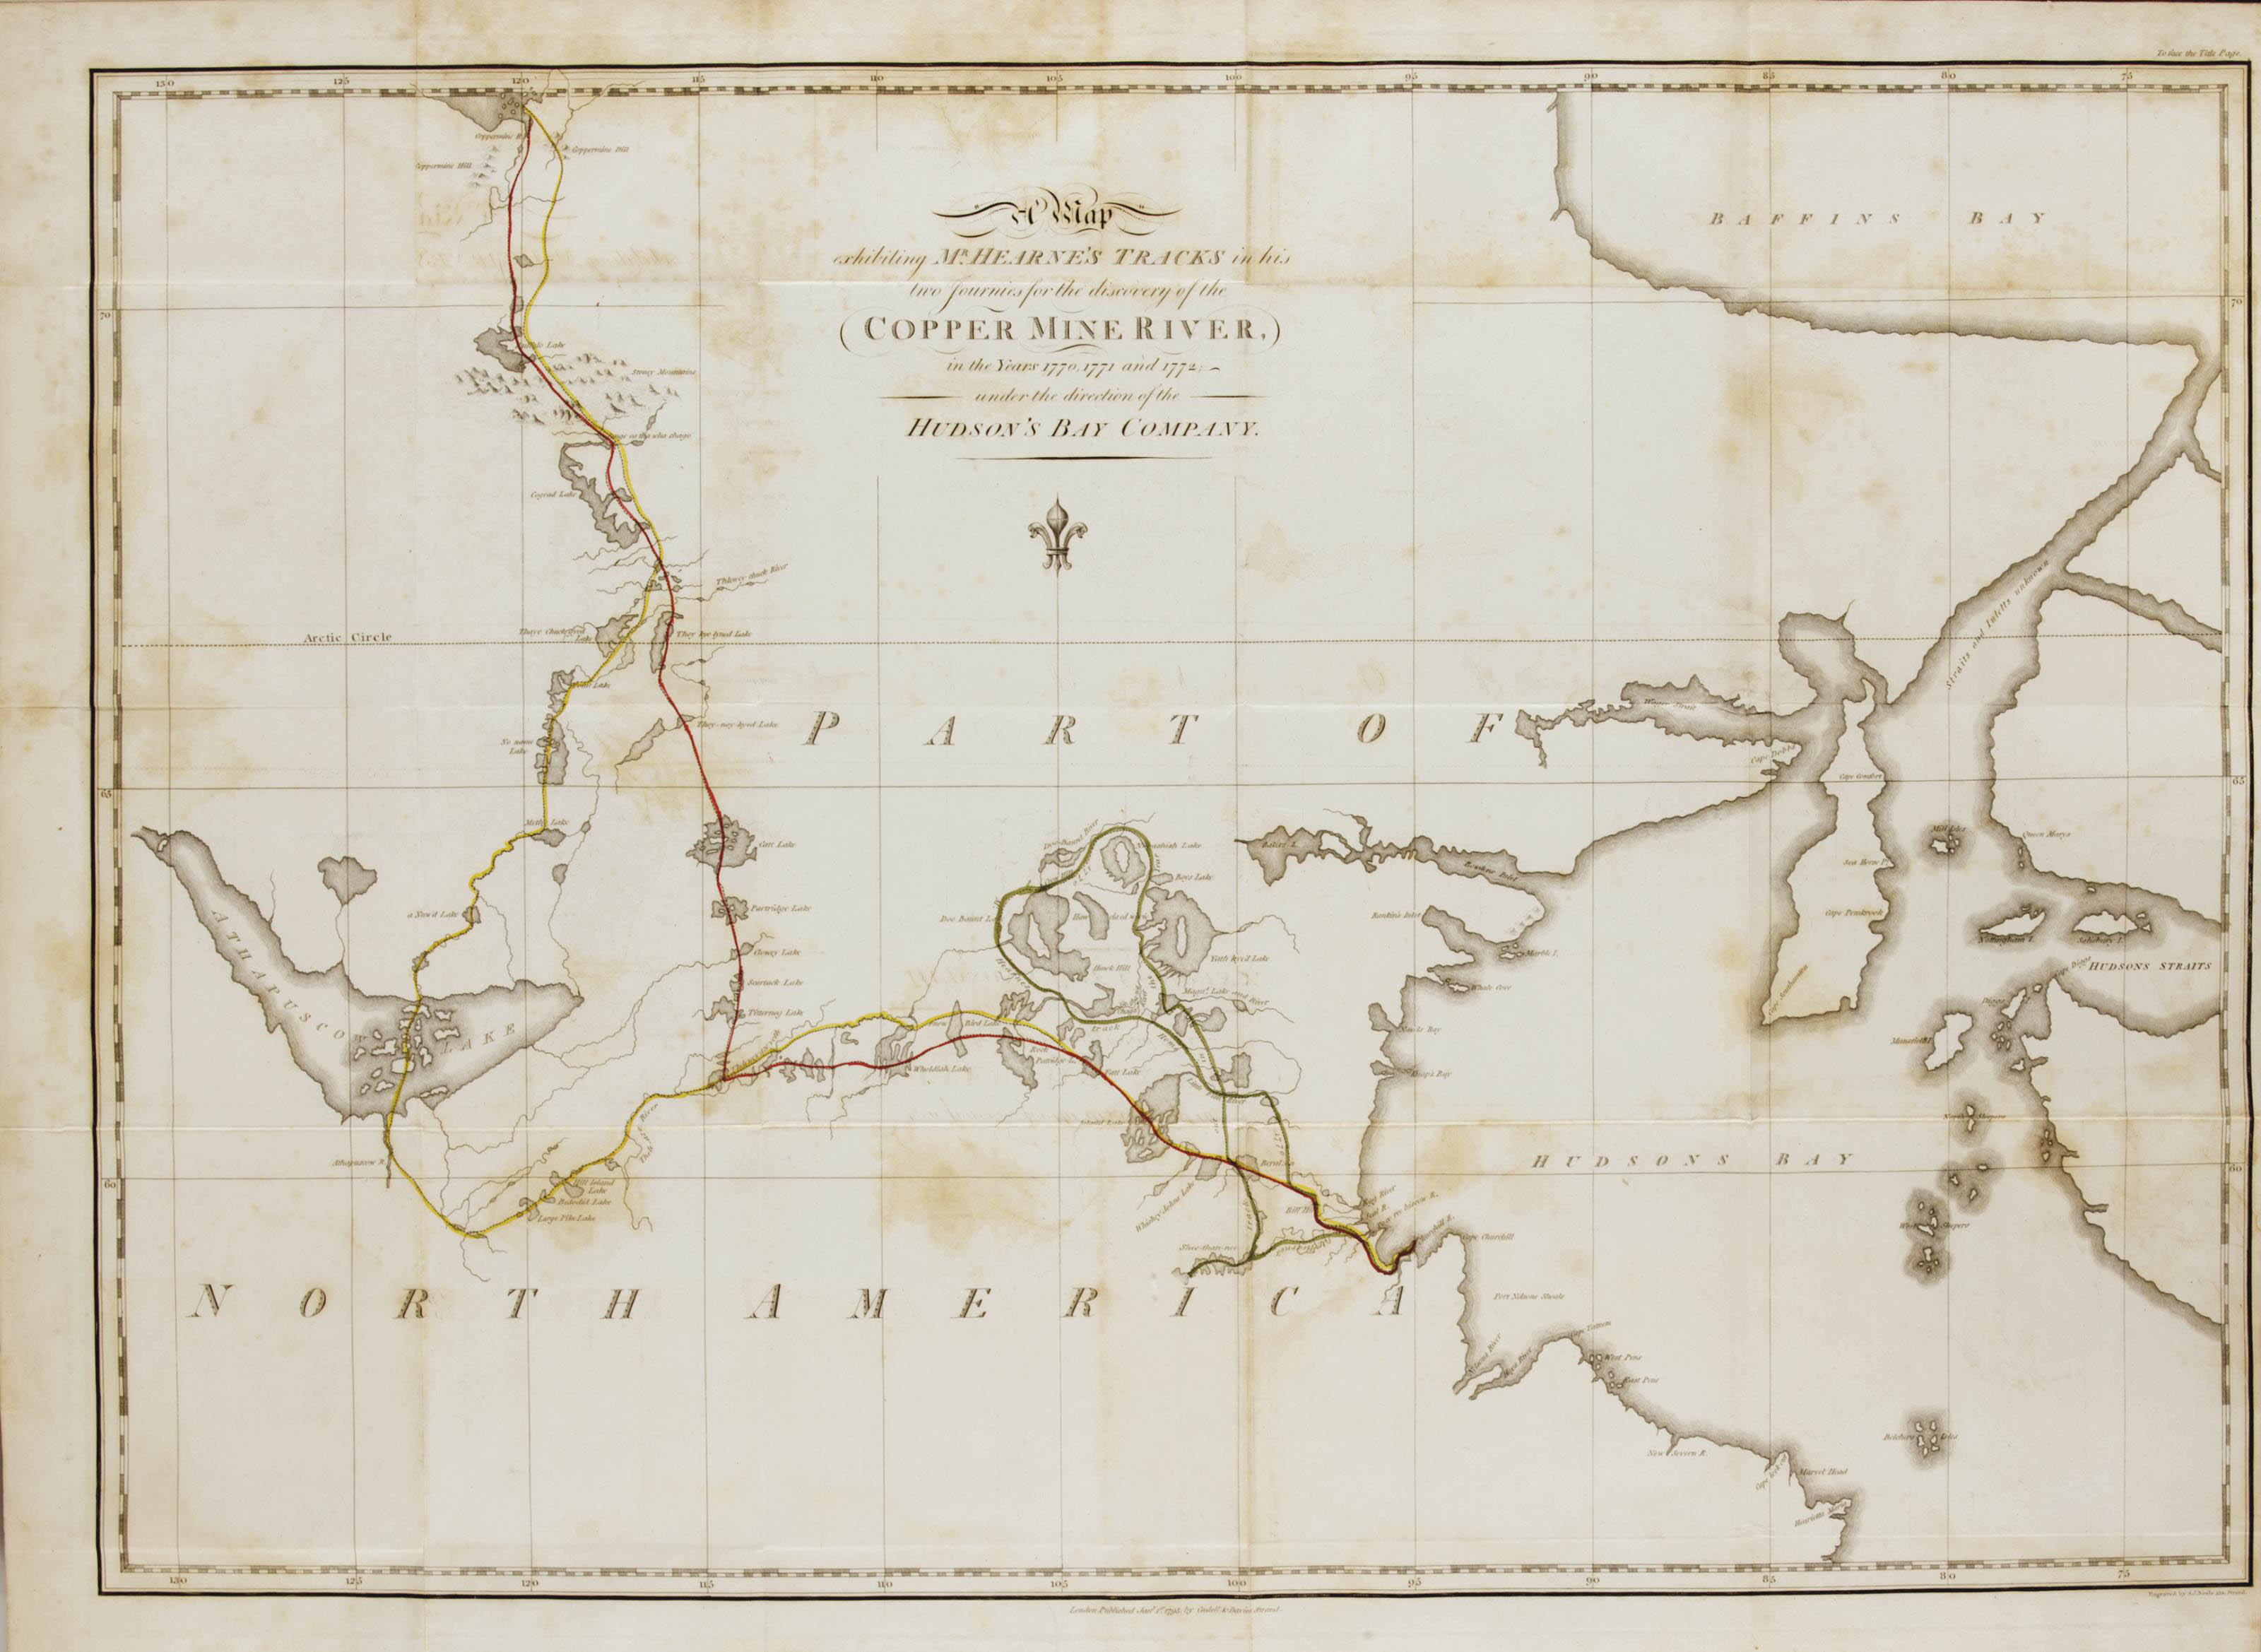 HEARNE, Samuel (1745-1792). A Journey from Prince of Wales's Fort in Hudson's Bay, to the Northern Ocean. Undertaken by Order of The Hudson's Bay Company, for the Discovery of Copper Mines, A North West Passage, &c. In the Years 1769, 1770, 1771, & 1772. London: Printed for A. Strahan and T. Cadell for T. Cadell and W. Davies, 1795.